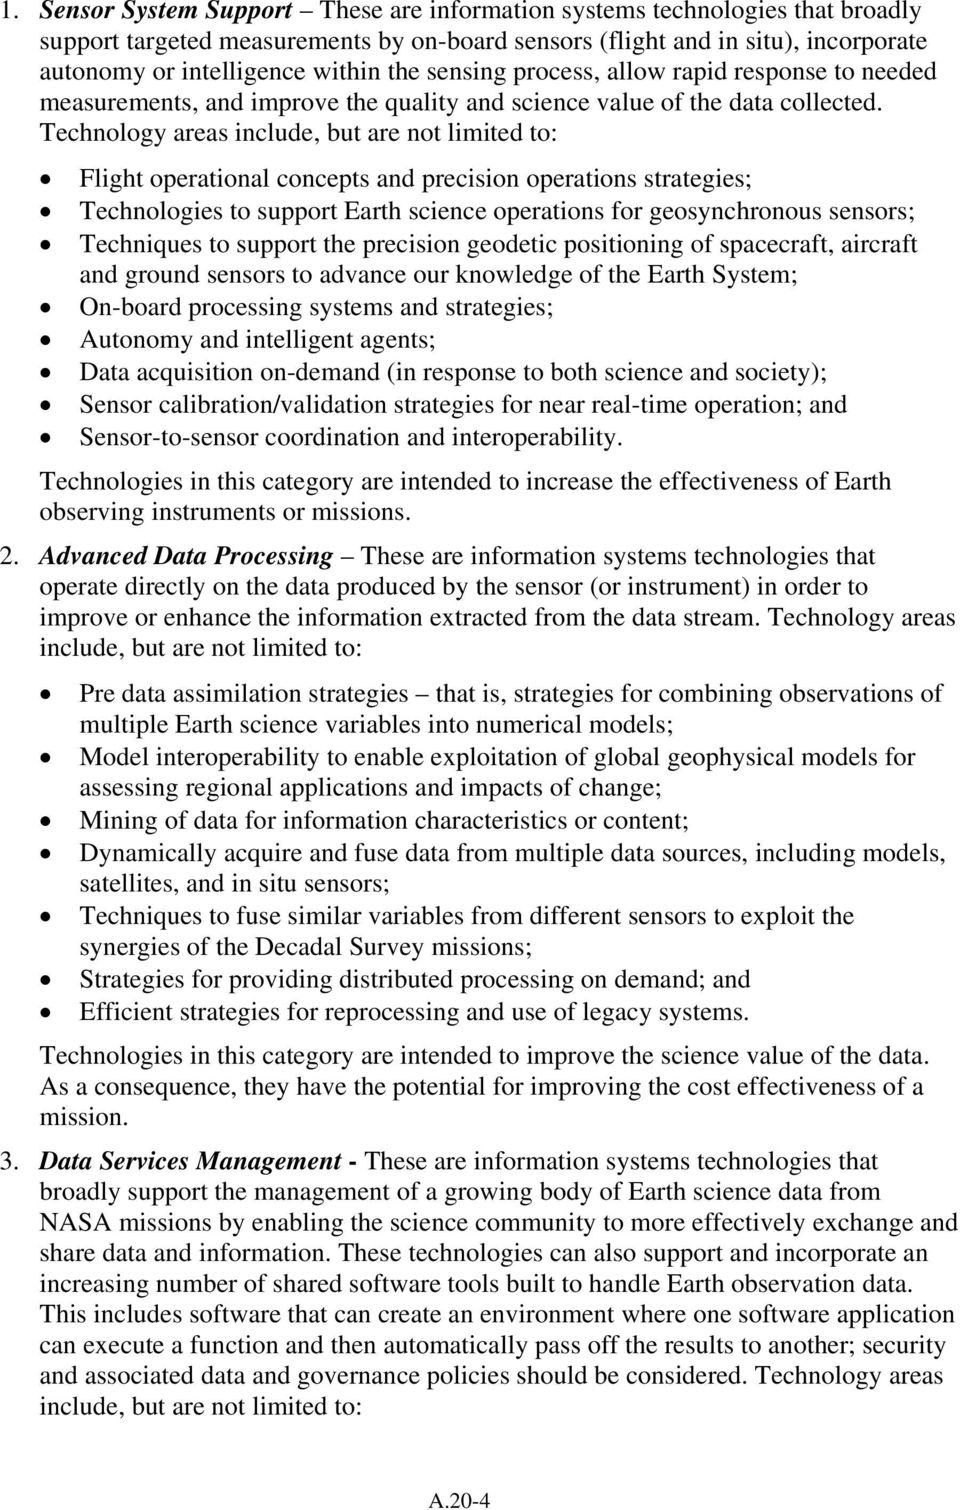 Technology areas include, but are not limited to: Flight operational concepts and precision operations strategies; Technologies to support Earth science operations for geosynchronous sensors;